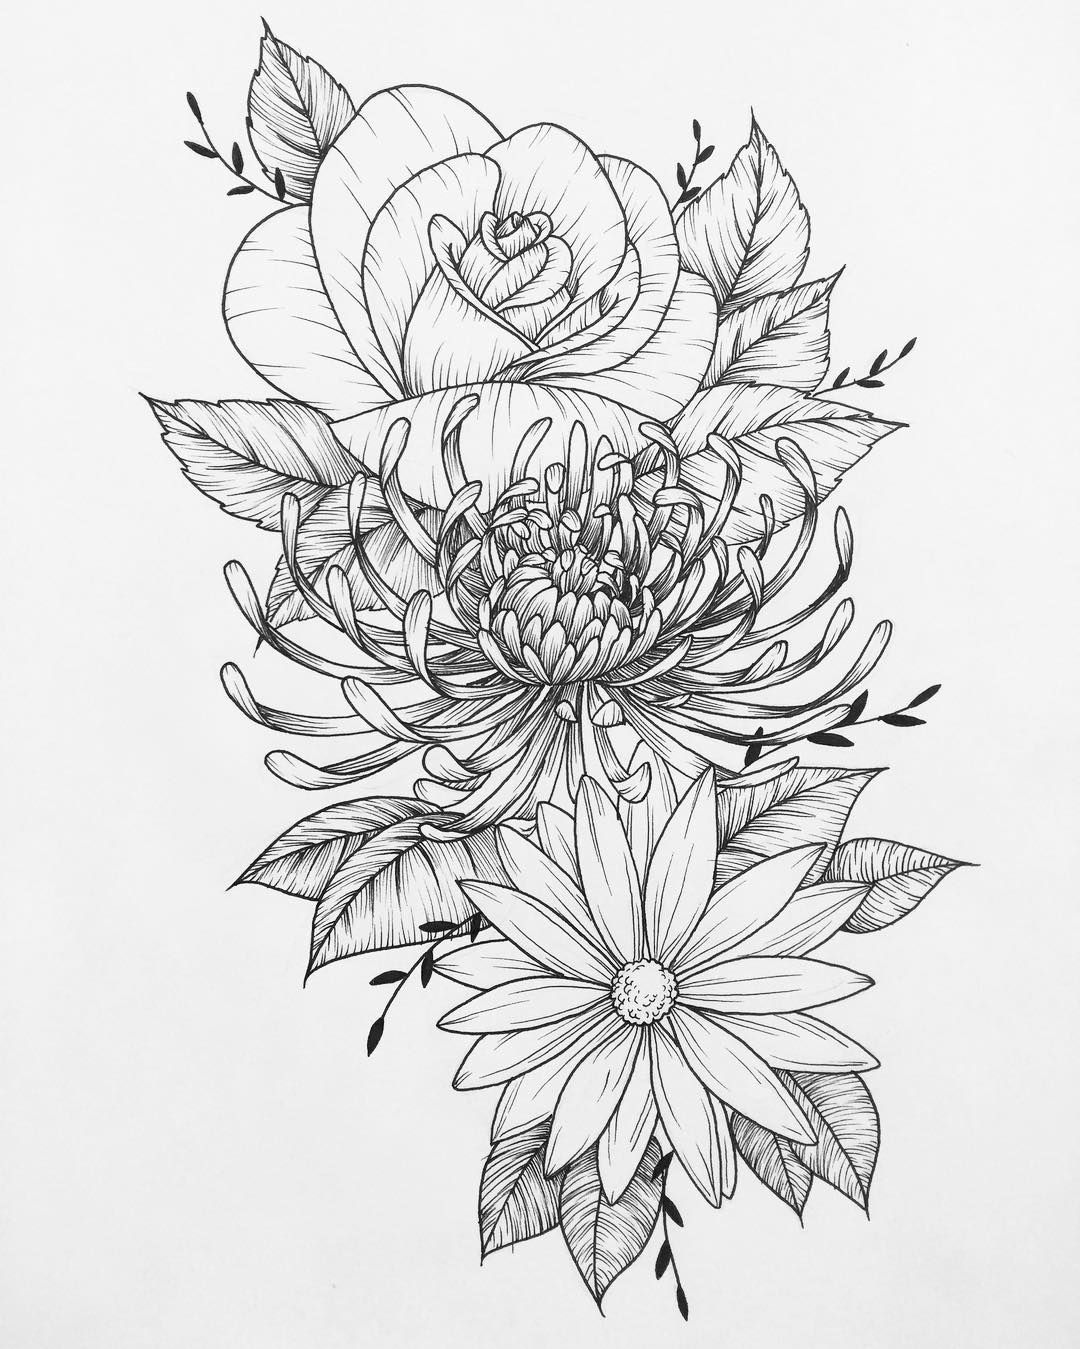 Most Recent Piece Done For A Very Nice Client Flowers Art Drawing Tattoo Flash Flower Chrysanthemum Tattoo Flower Tattoo Drawings Colorful Flower Tattoo